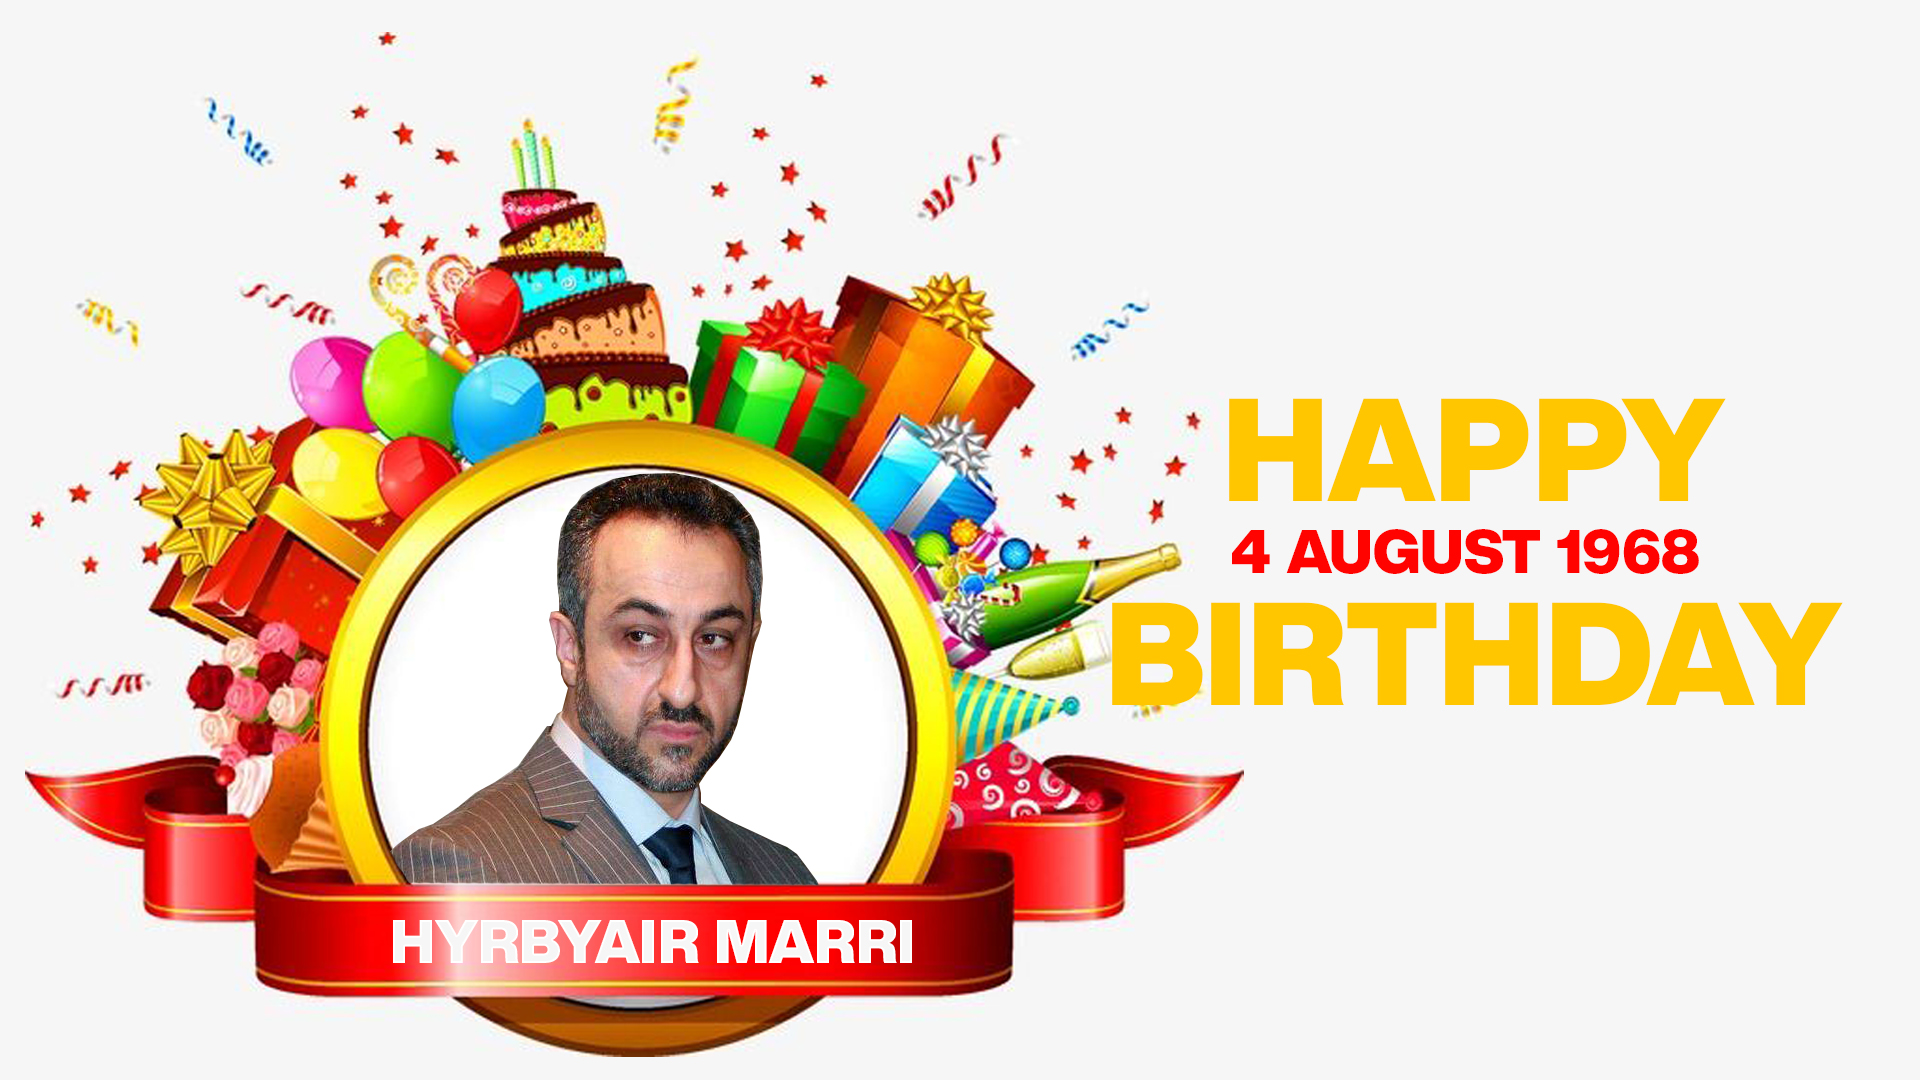 Happy Birthday to Hyrbyair Marri